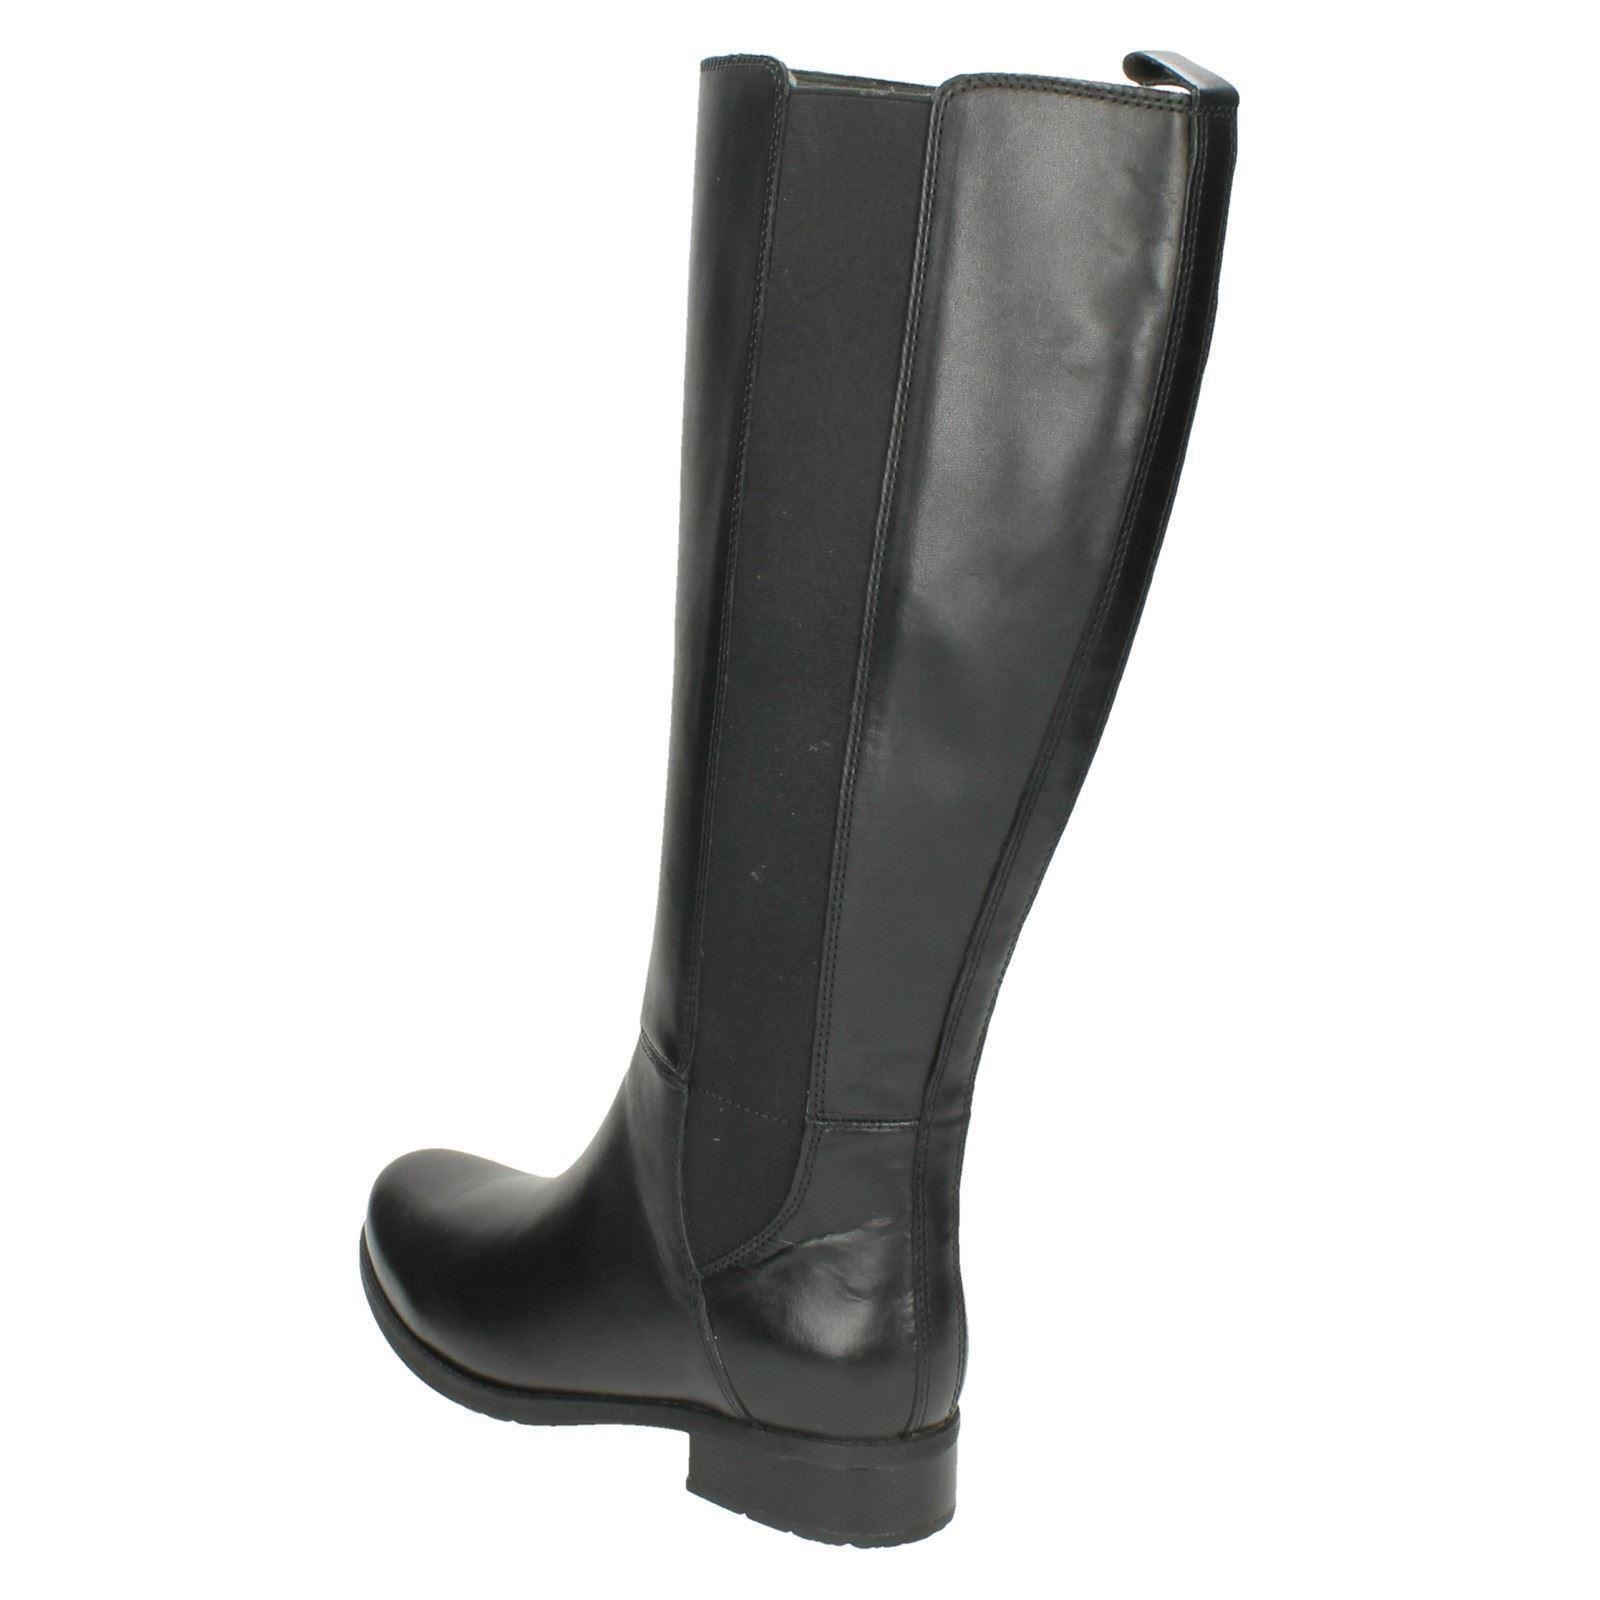 cb5b7051cd5 Ladies Clarks Smart Long BOOTS Style - Verlie Gail Black Leather 6.5 UK D